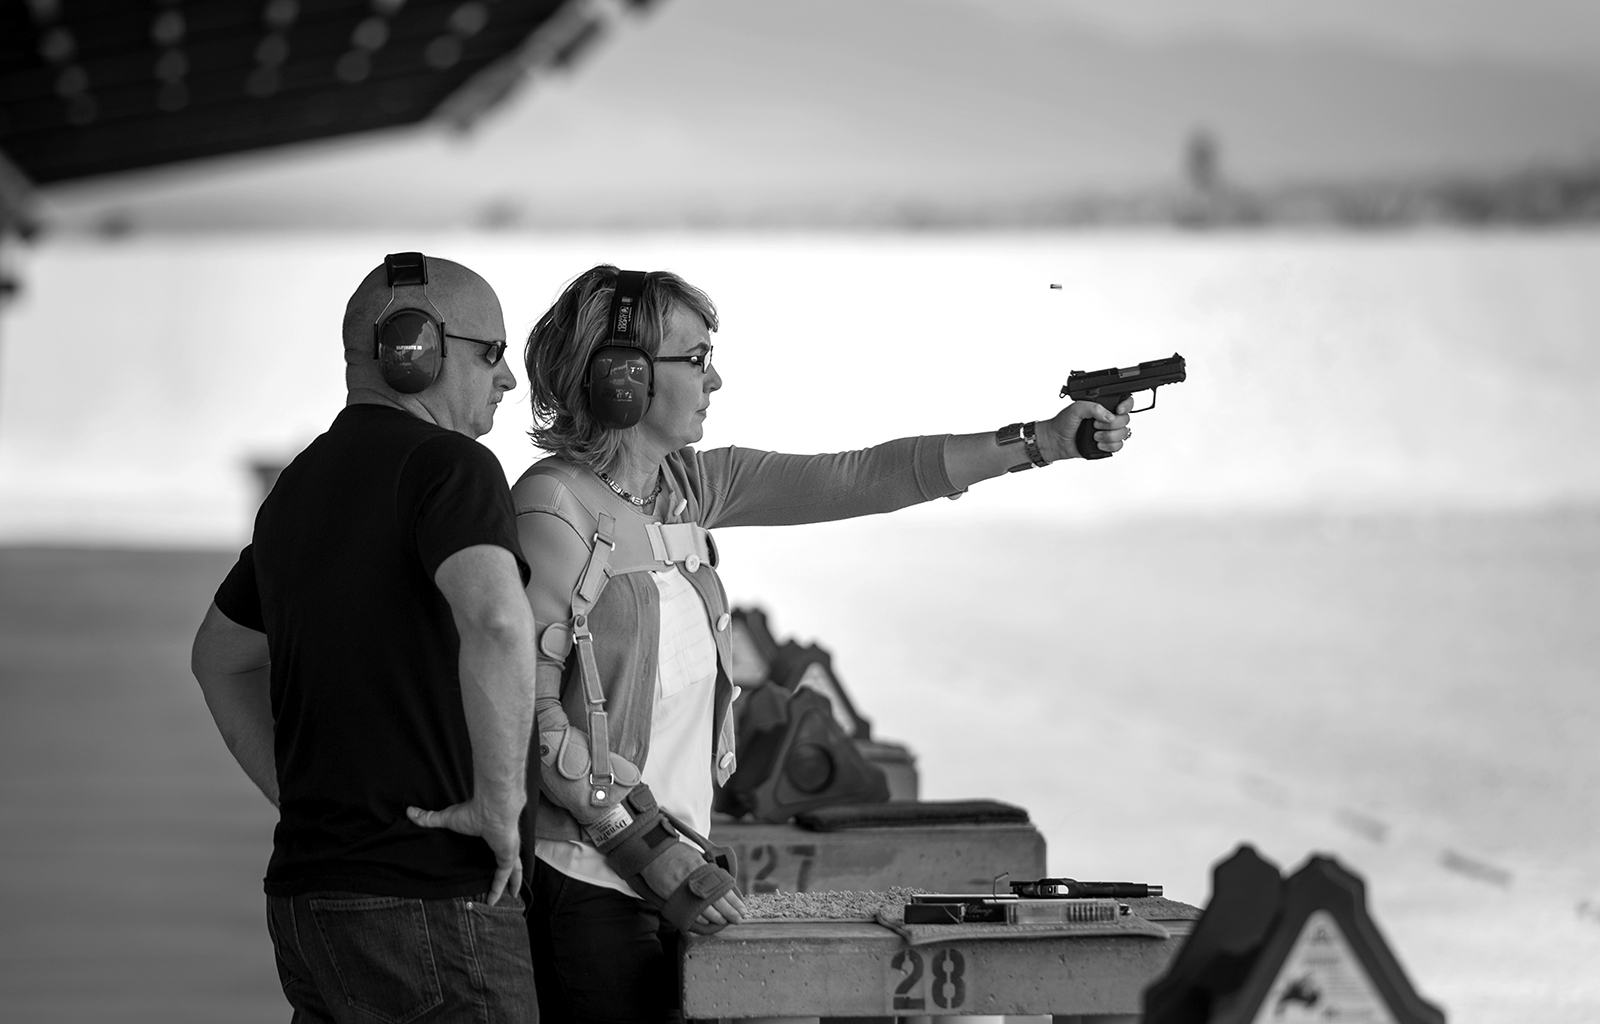 With steely determination former U.S. Representative Gabrielle Giffords fires a gun for the first time since being shot in the head during a meet and greet with constituents in Arizona more than 2 years ago as her husband Mark Kelly watches  on Monday, July 1, 2013. © 2013 Nikki Kahn/The Washington Post ALL RIGHTS RESERVED